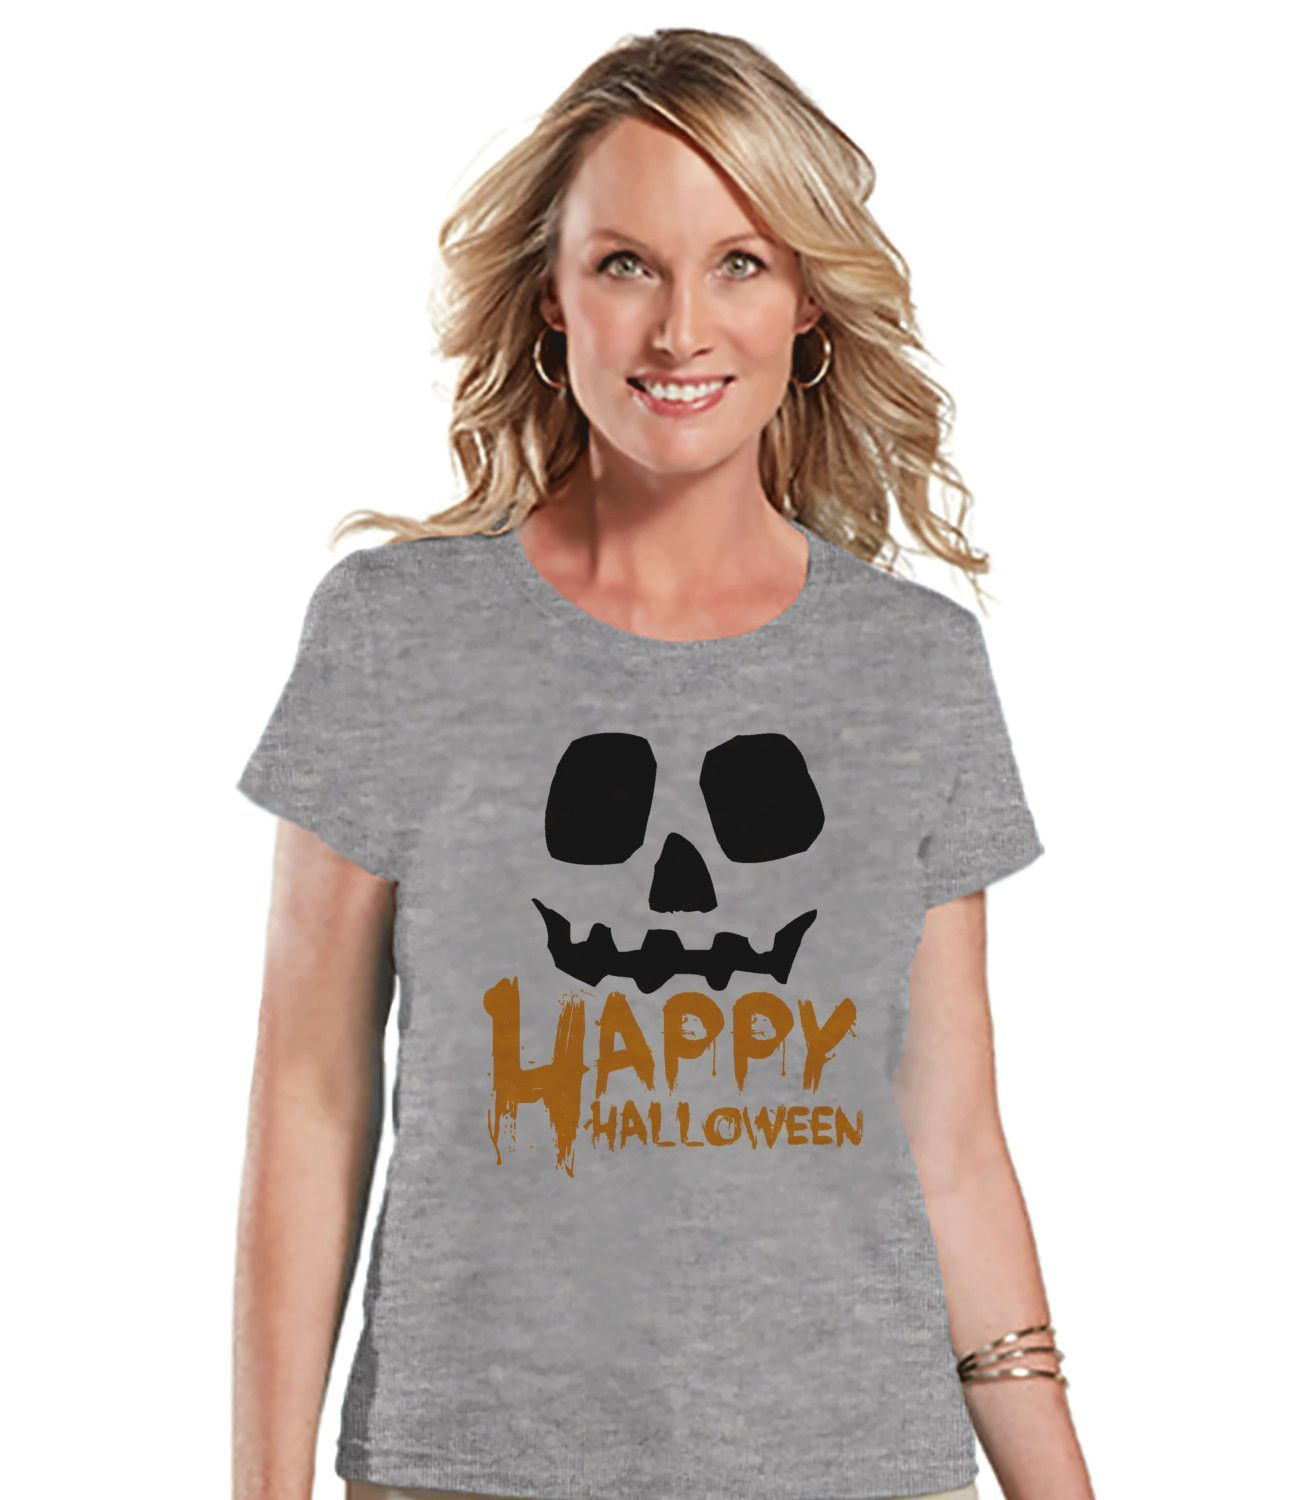 happy halloween shirt adult halloween costumes pumpkin shirt womens costume tshirt ladies - Halloween Shirts For Ladies